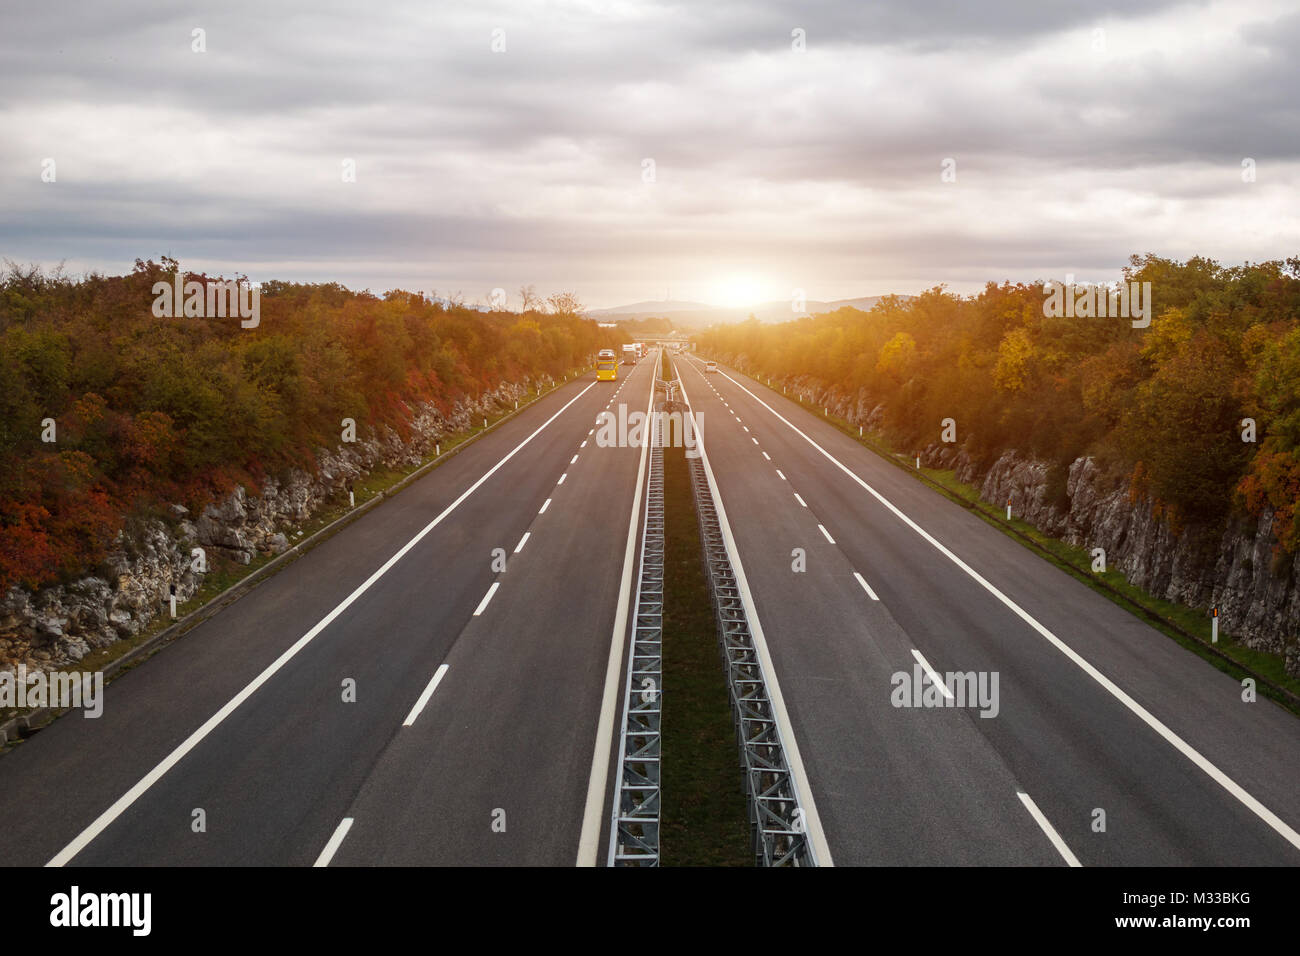 Sunrise on the highway  Transportation and traffic concept Stock